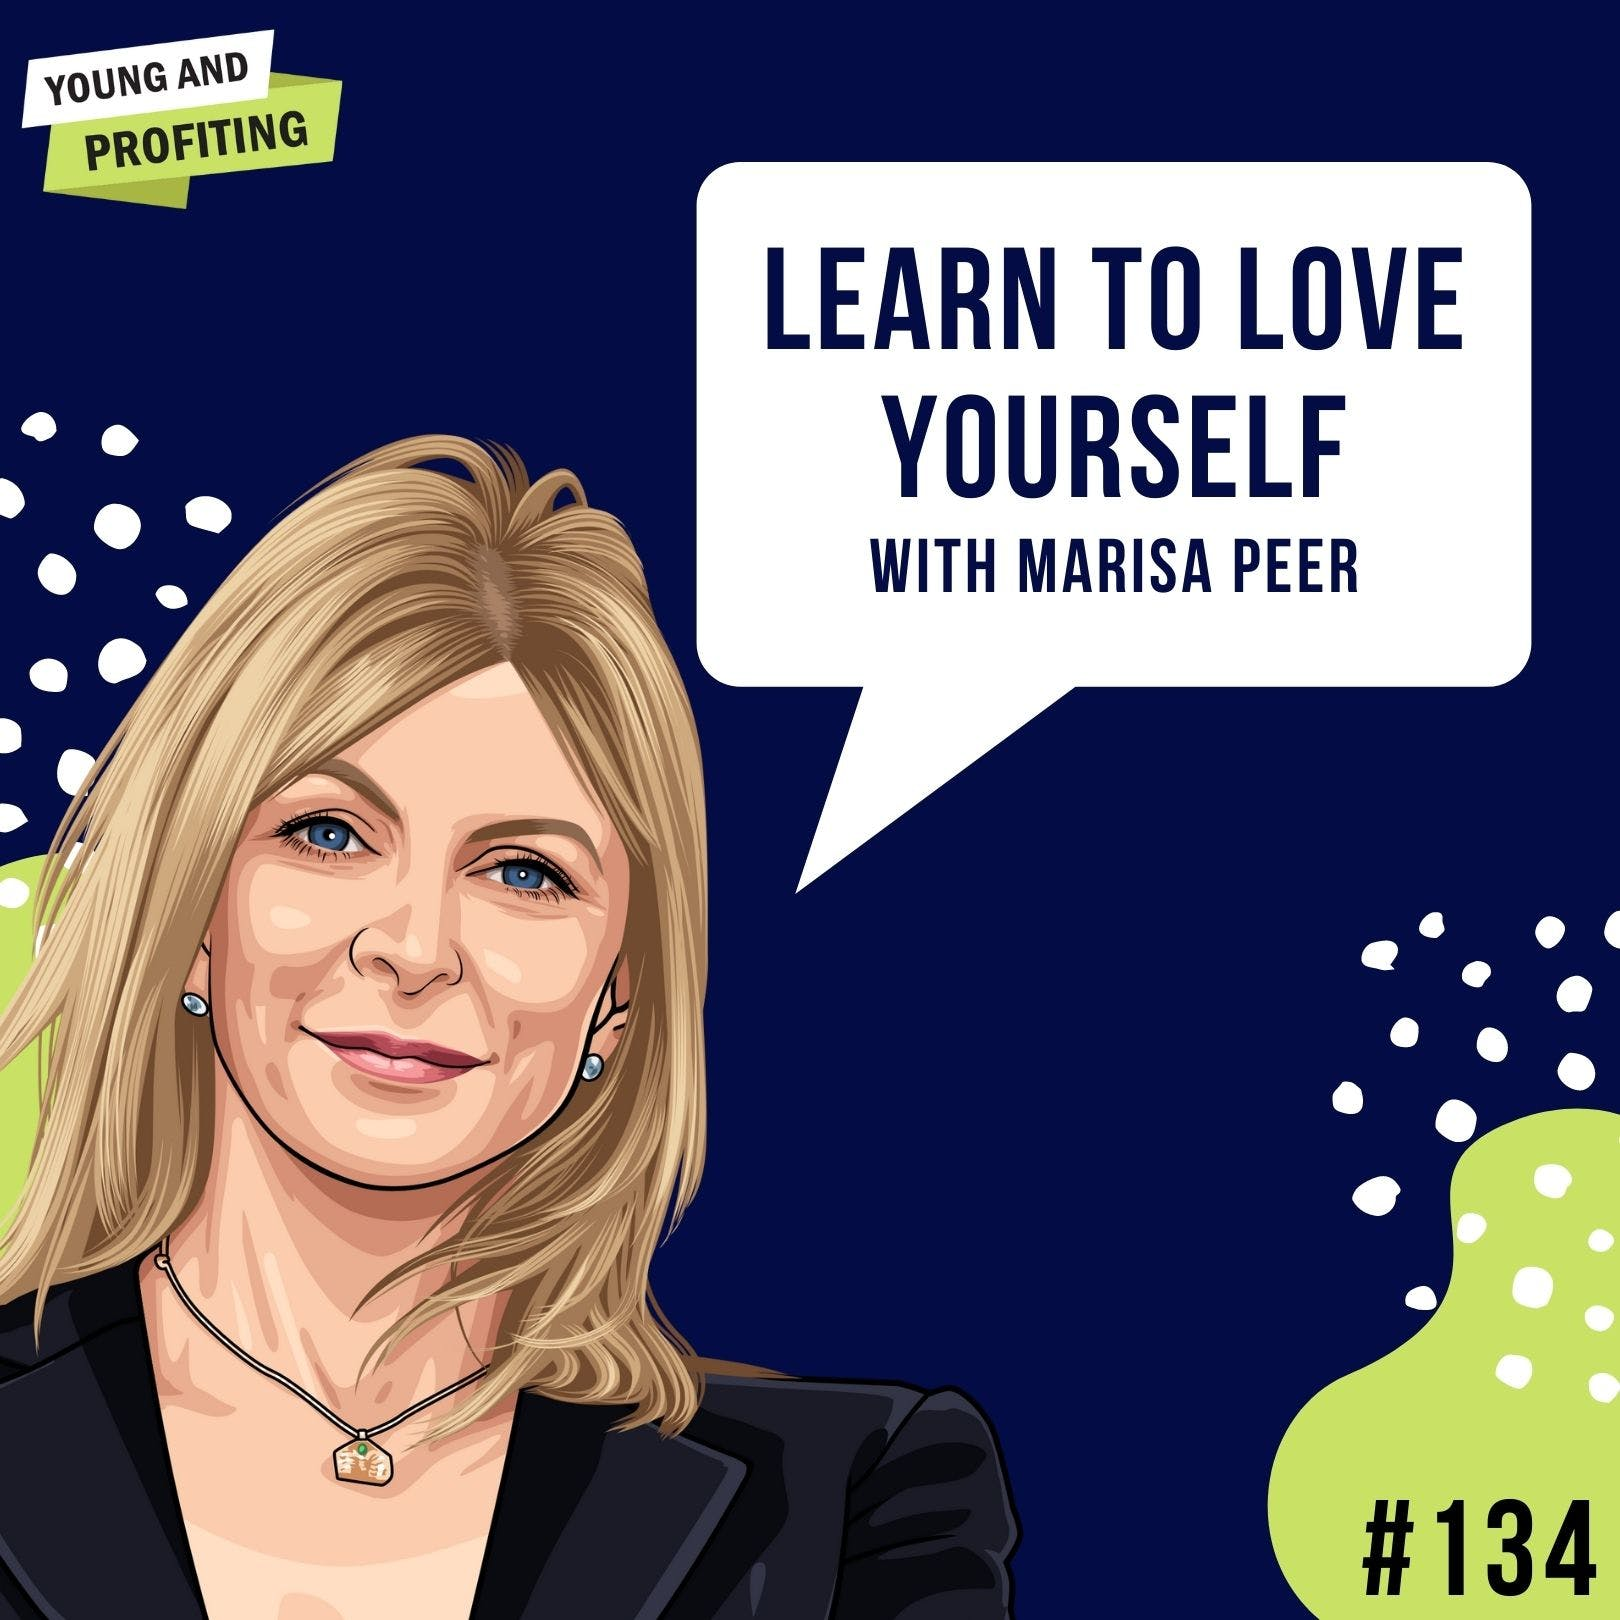 #134: Learn to Love Yourself with Marisa Peer